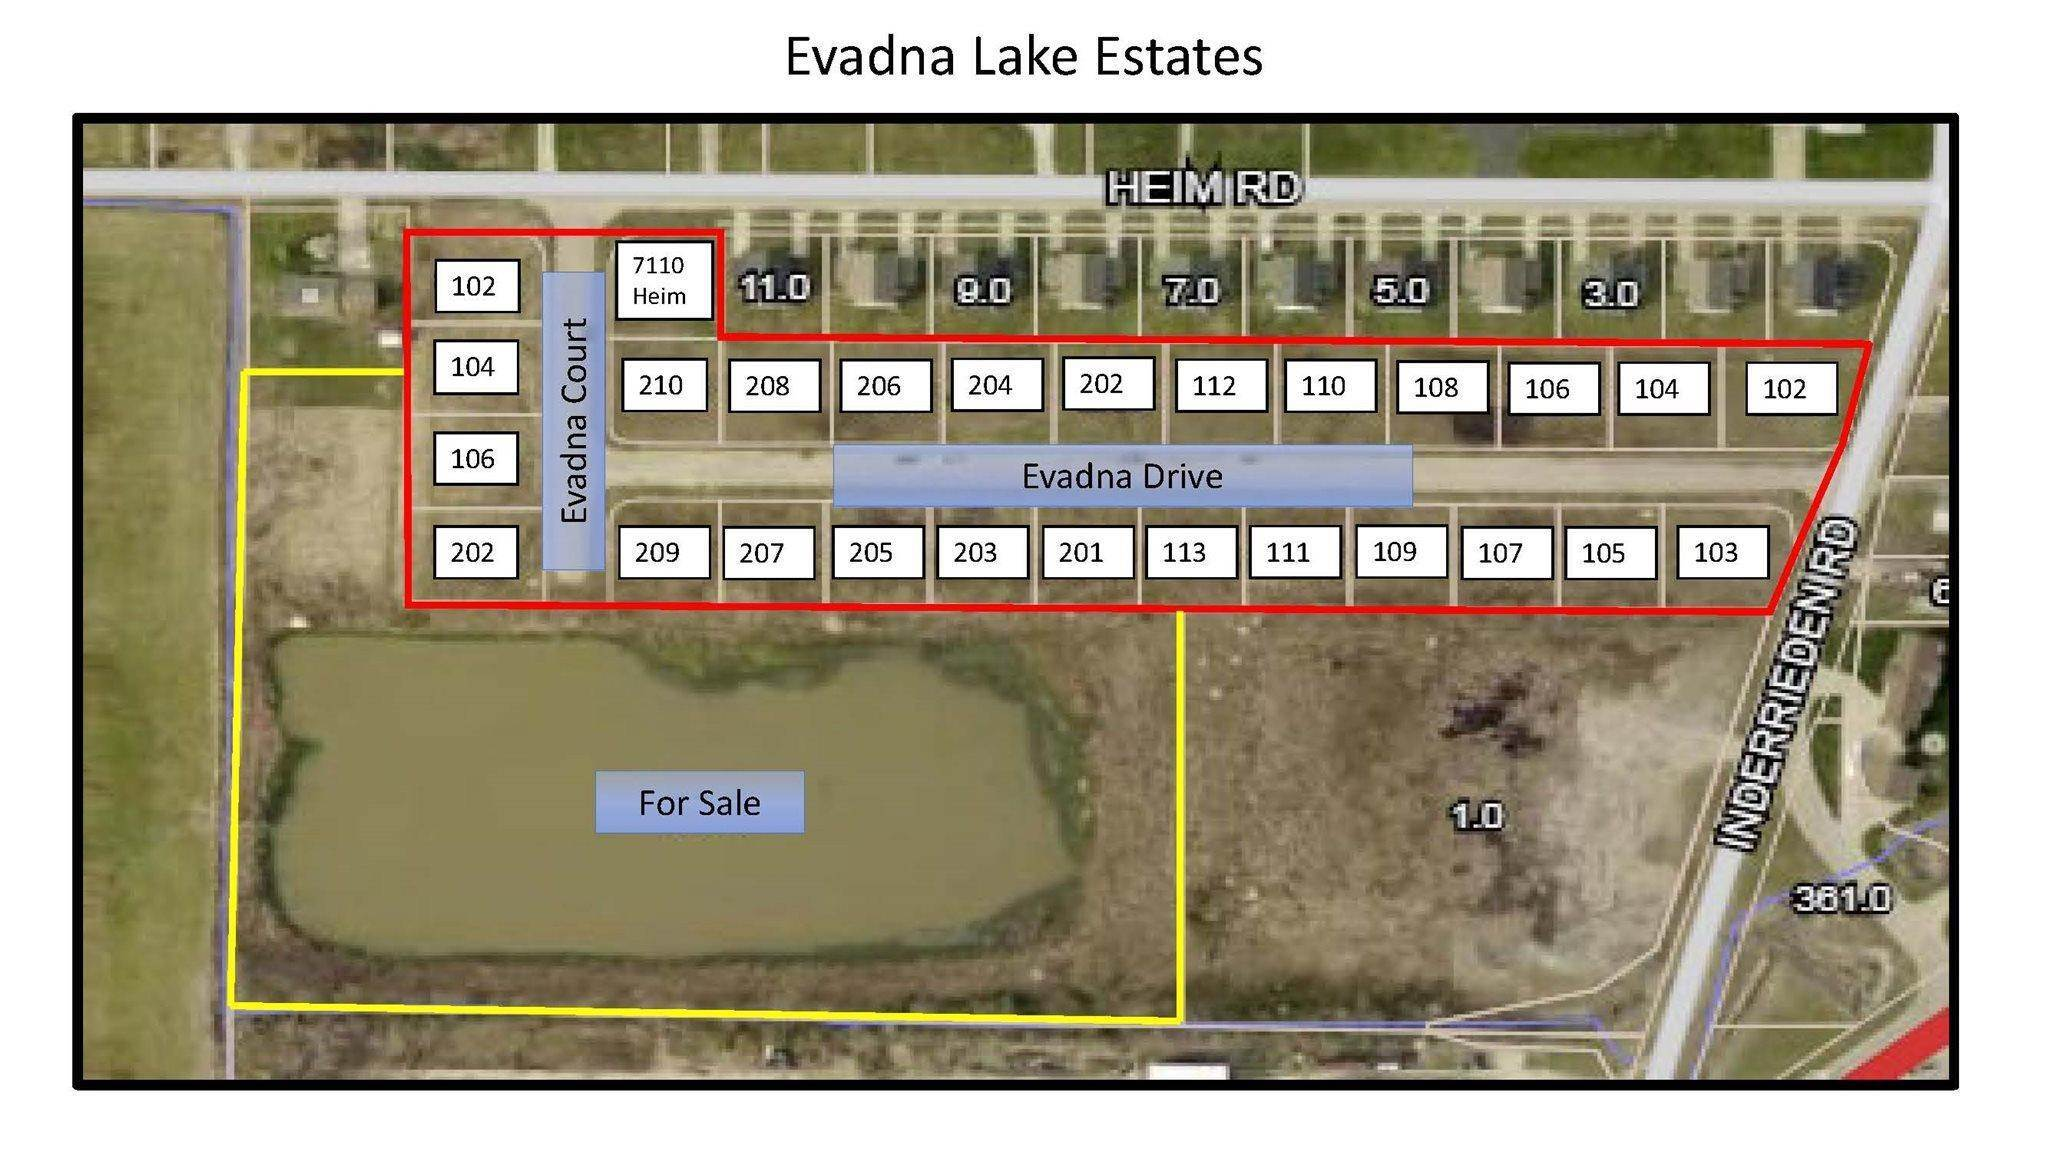 Residential Lots & Land for Sale at 102 Evadna Court Boonville, Indiana 47610 United States